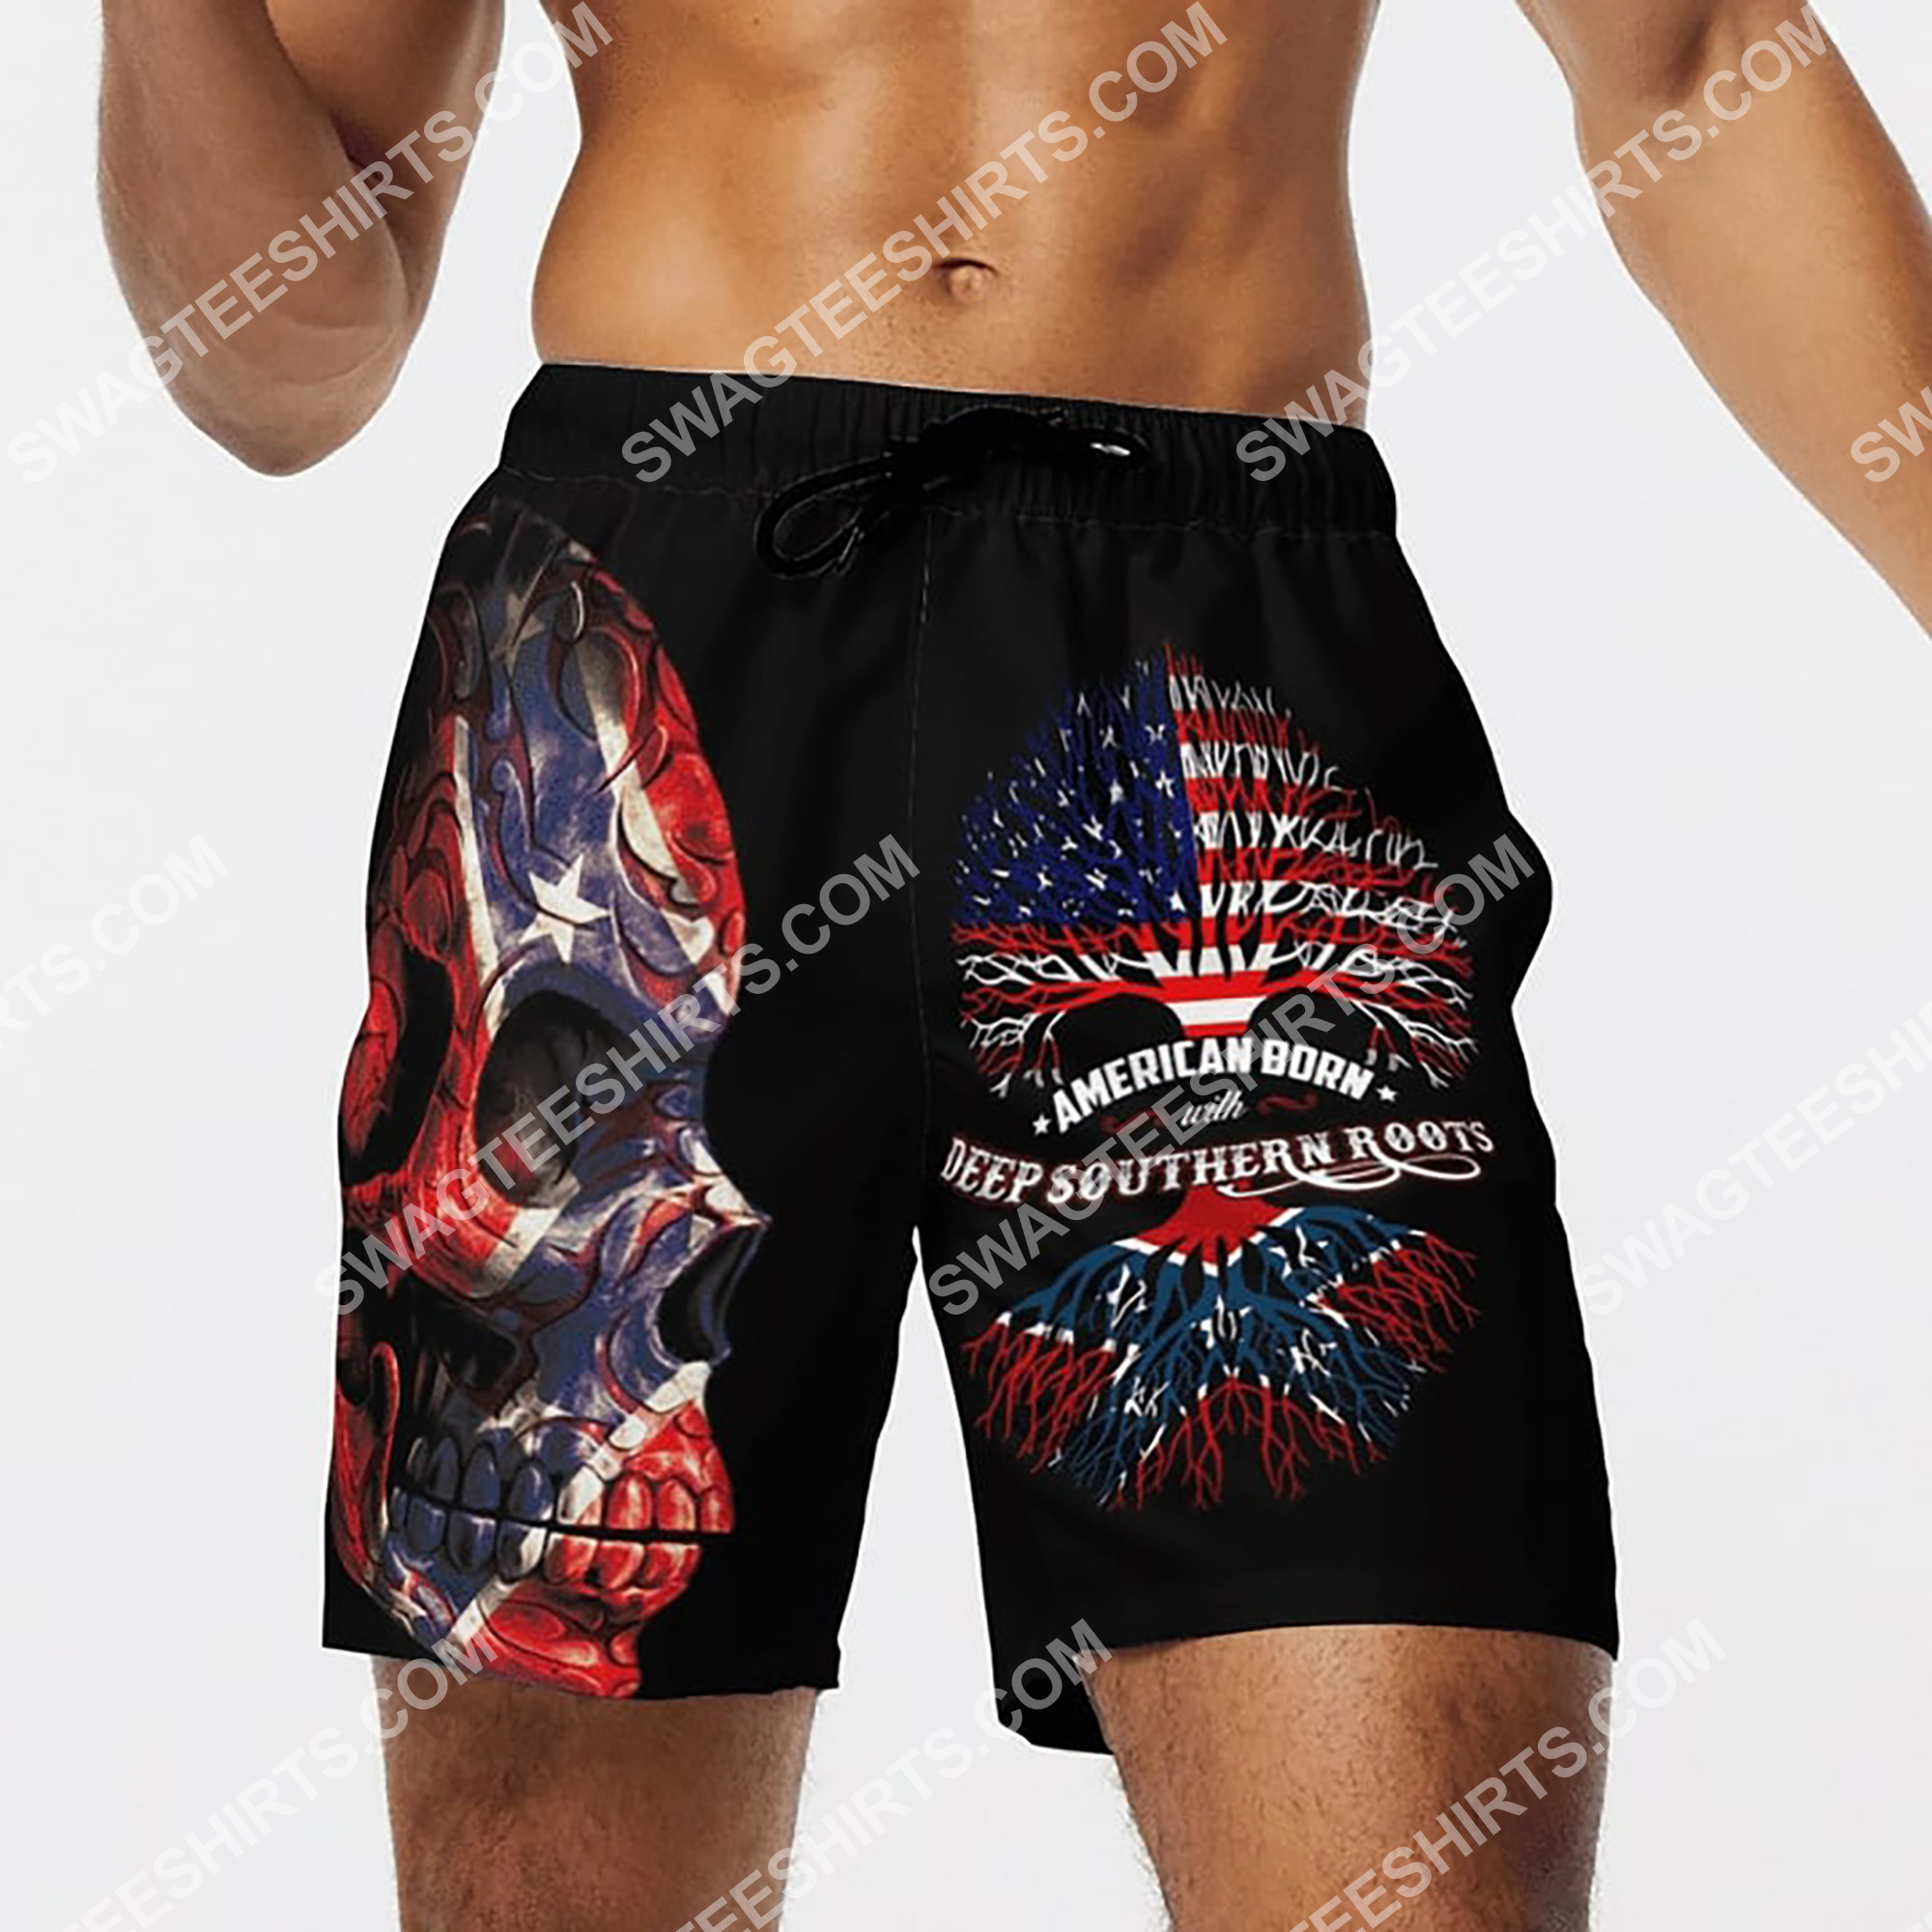 sugar skull american born with deep southern roots beach shorts 4(1)